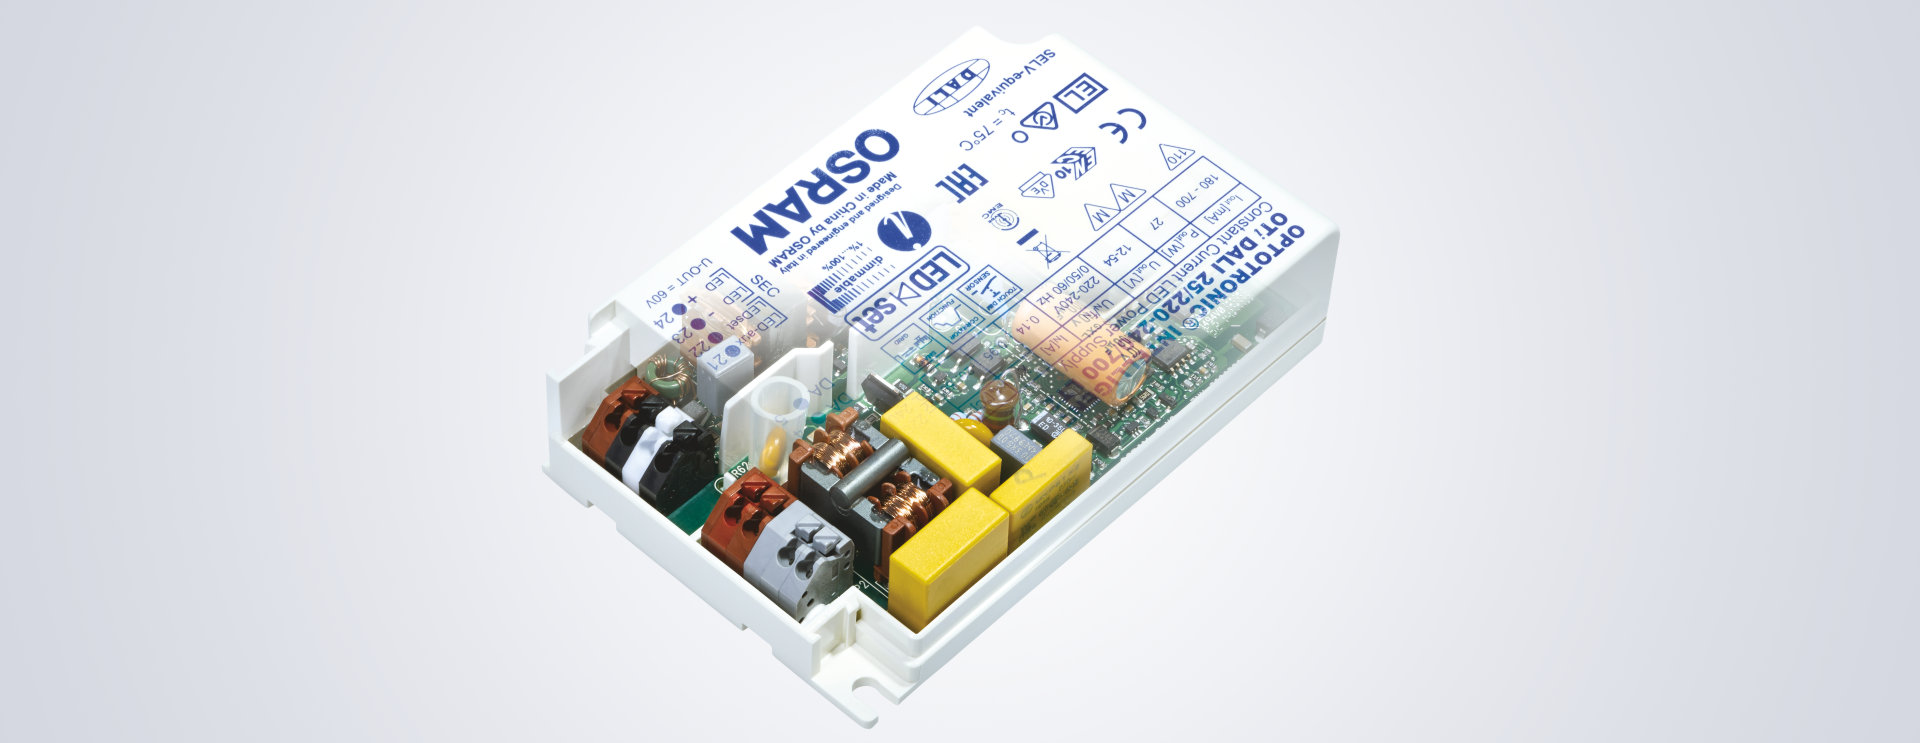 Astonishing Constant Current Source Led Driver Led Ballast From Osram Light Wiring Cloud Waroletkolfr09Org